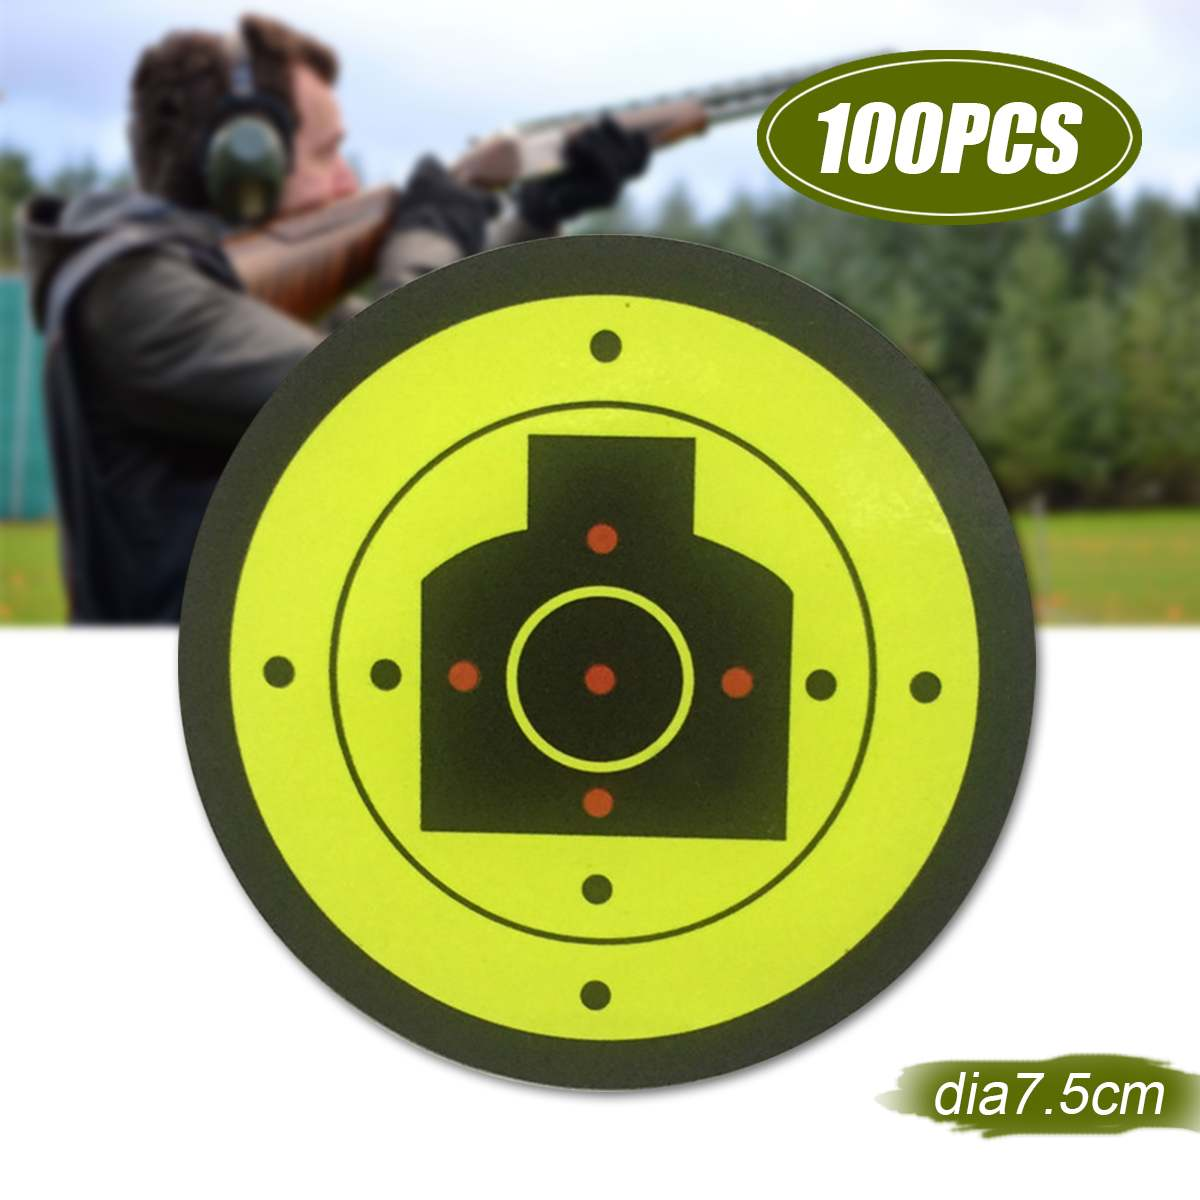 100Pcs Stick Splatter Reactive Target Sticker Self Adhesive Shooting Targets For Fluorescent Hunting Guns Target Paper Dia 7.5cm